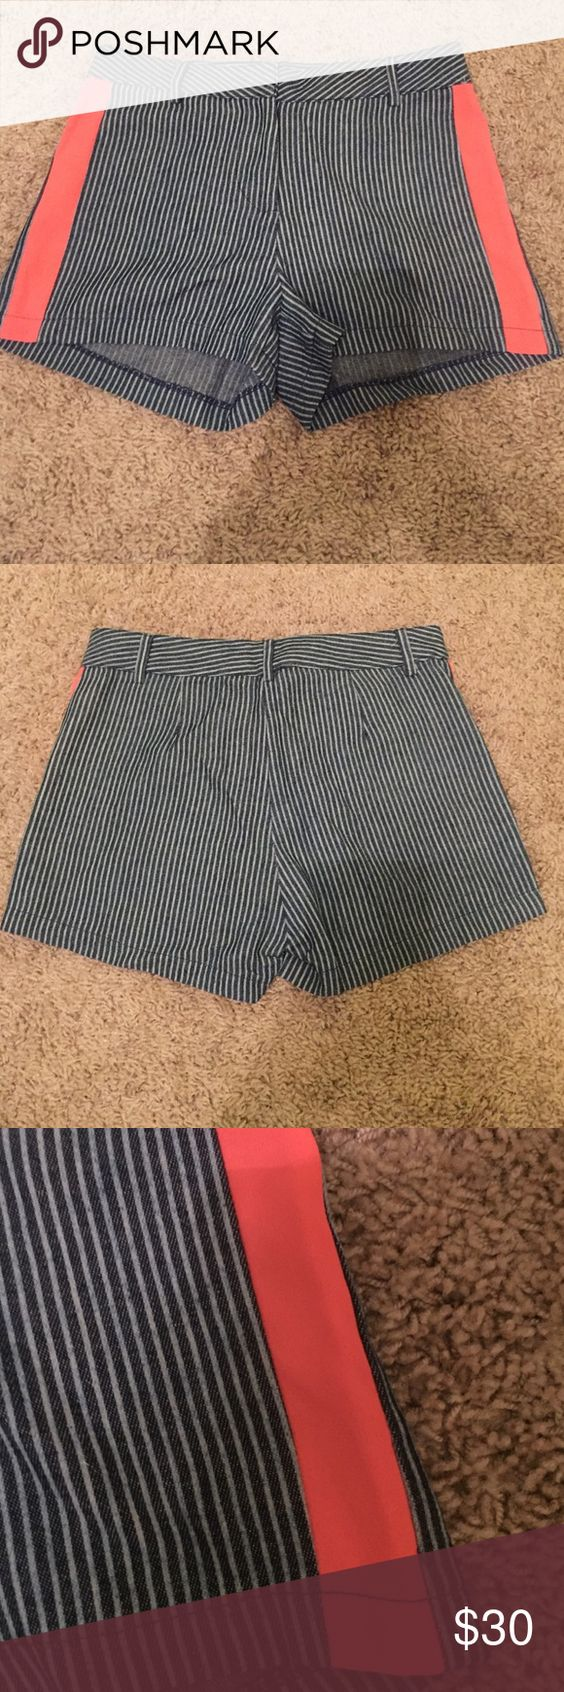 Jealous Tomato Shorts Navy blue and light blue striped shorts with a bright orange/pink stripe down each side. Very flattering! Worn one time. In great condition! Jealous Tomato Shorts